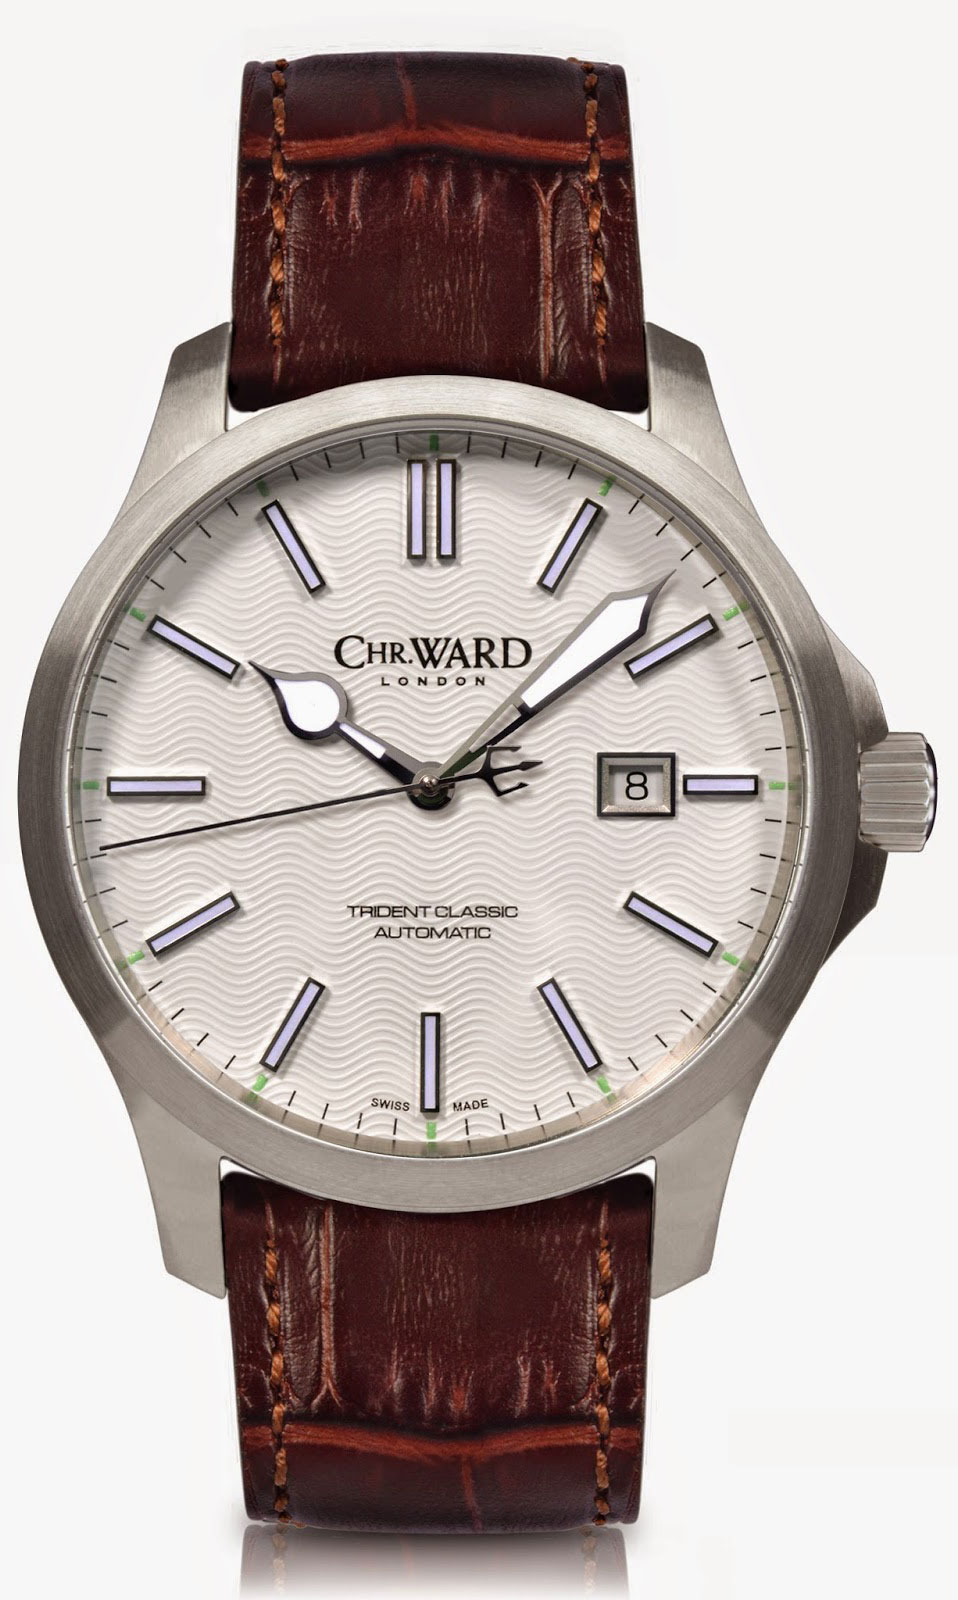 ���� C65 Trident Classic �� ������� ������� � ��������� �� ����������� ����� �� Christopher Ward